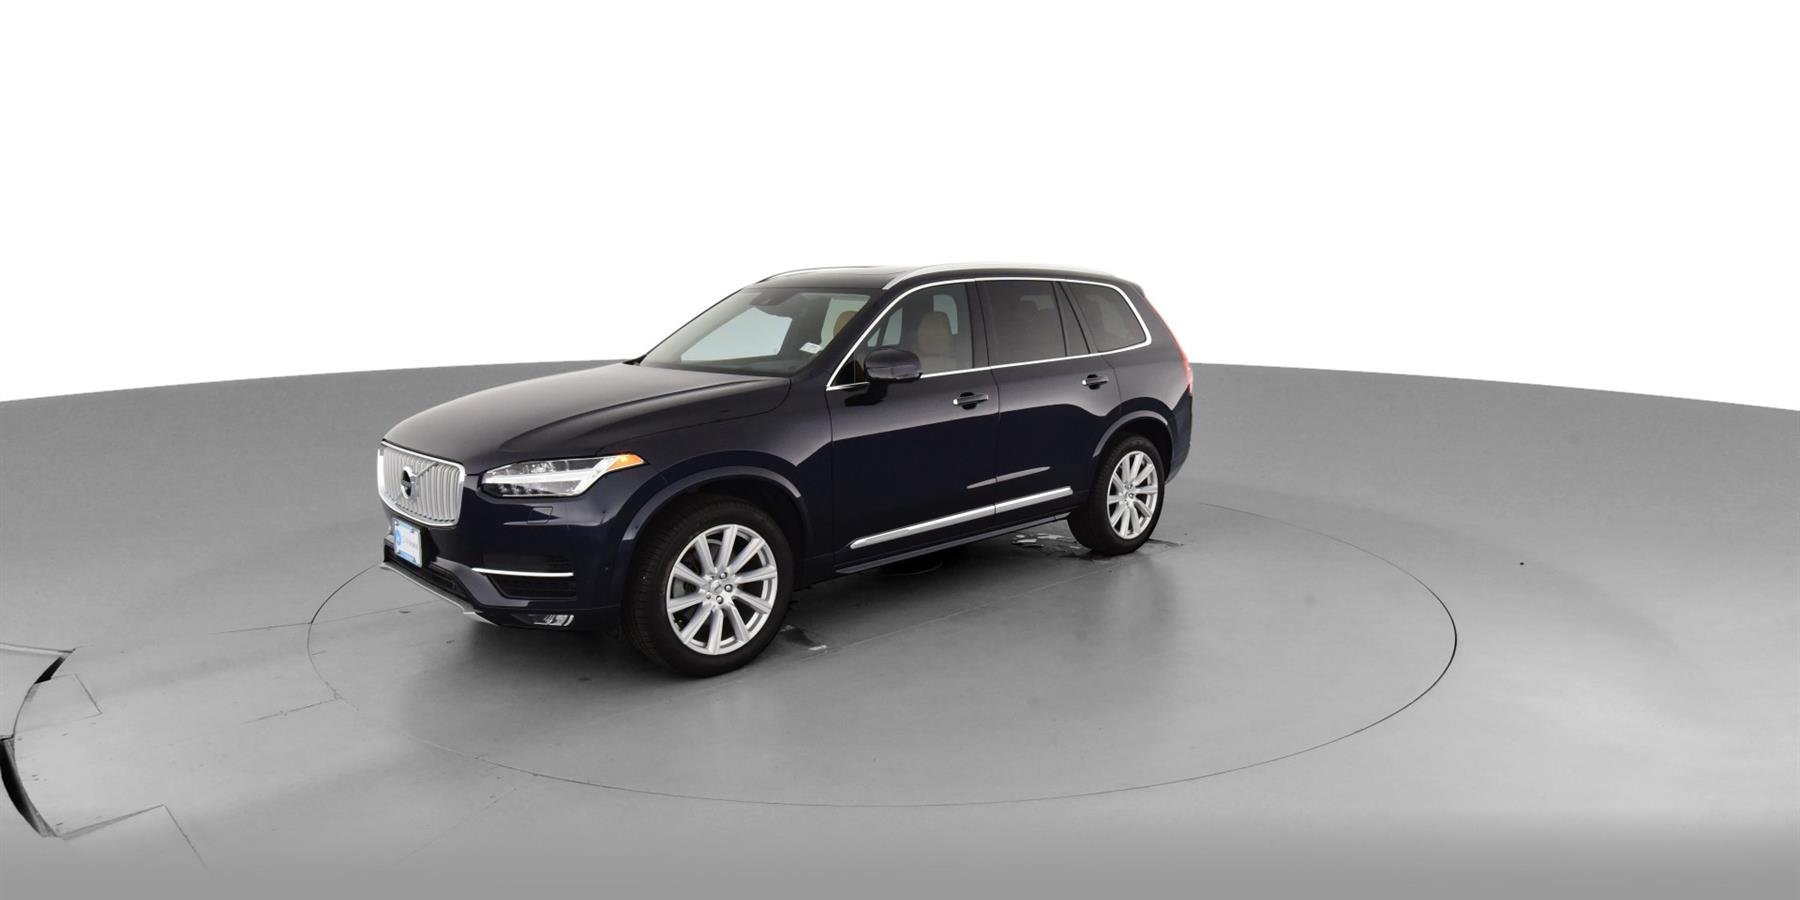 2016 Volvo XC90 T6 Inscription Sport Utility 4D for Sale | Carvana®